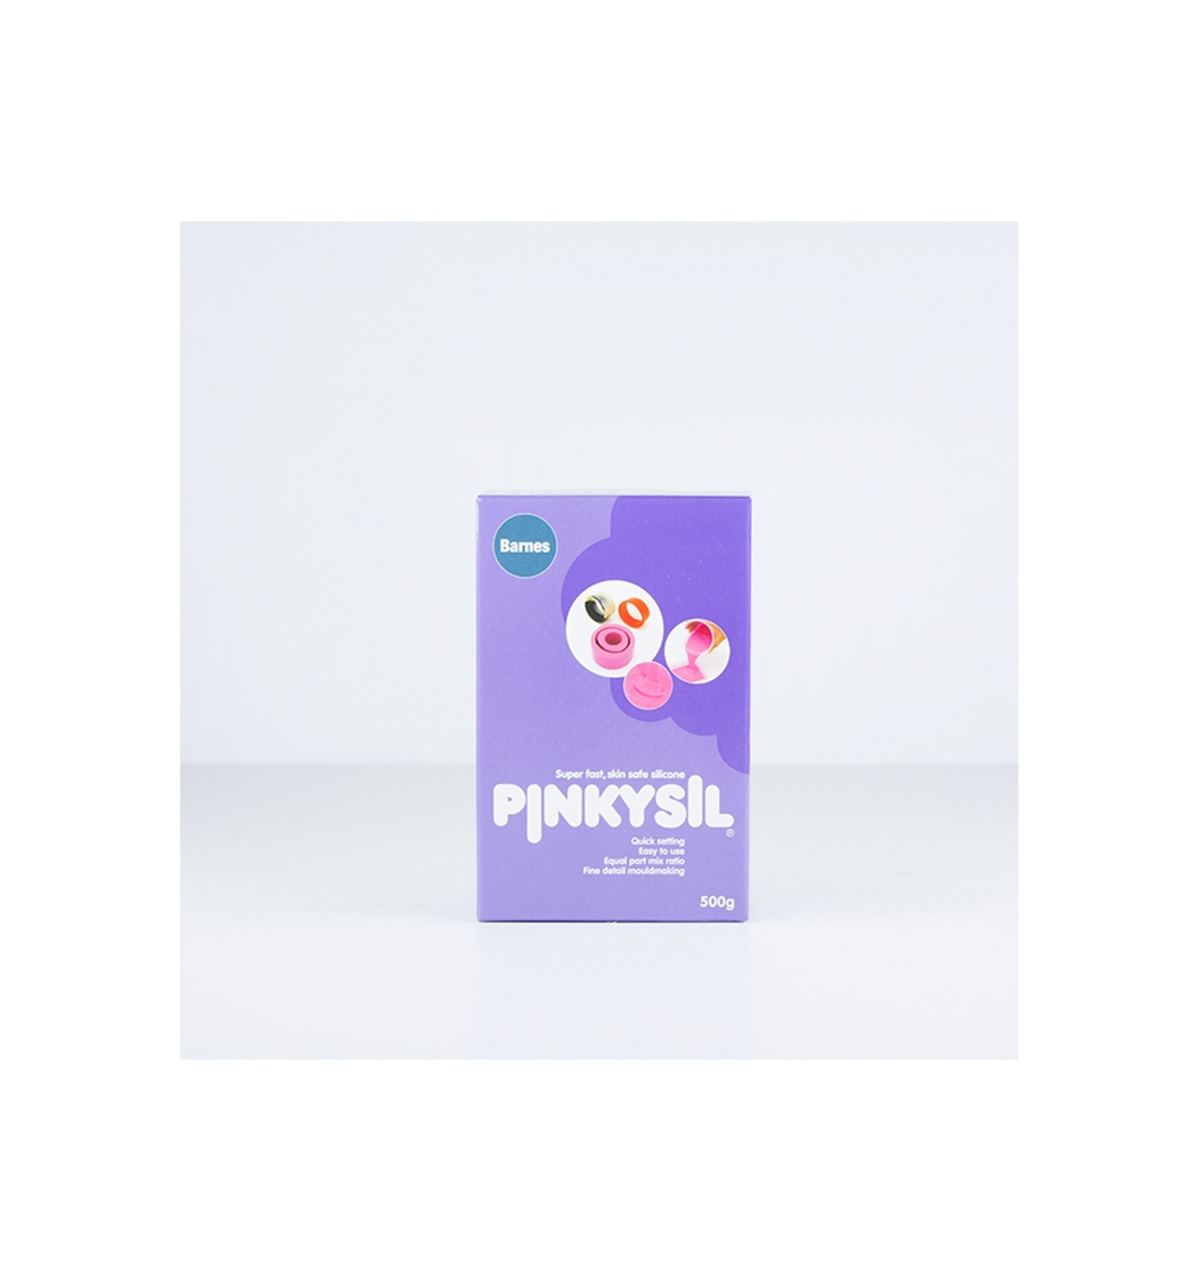 Barnes Pinkysil 500g Casting Silicone kit